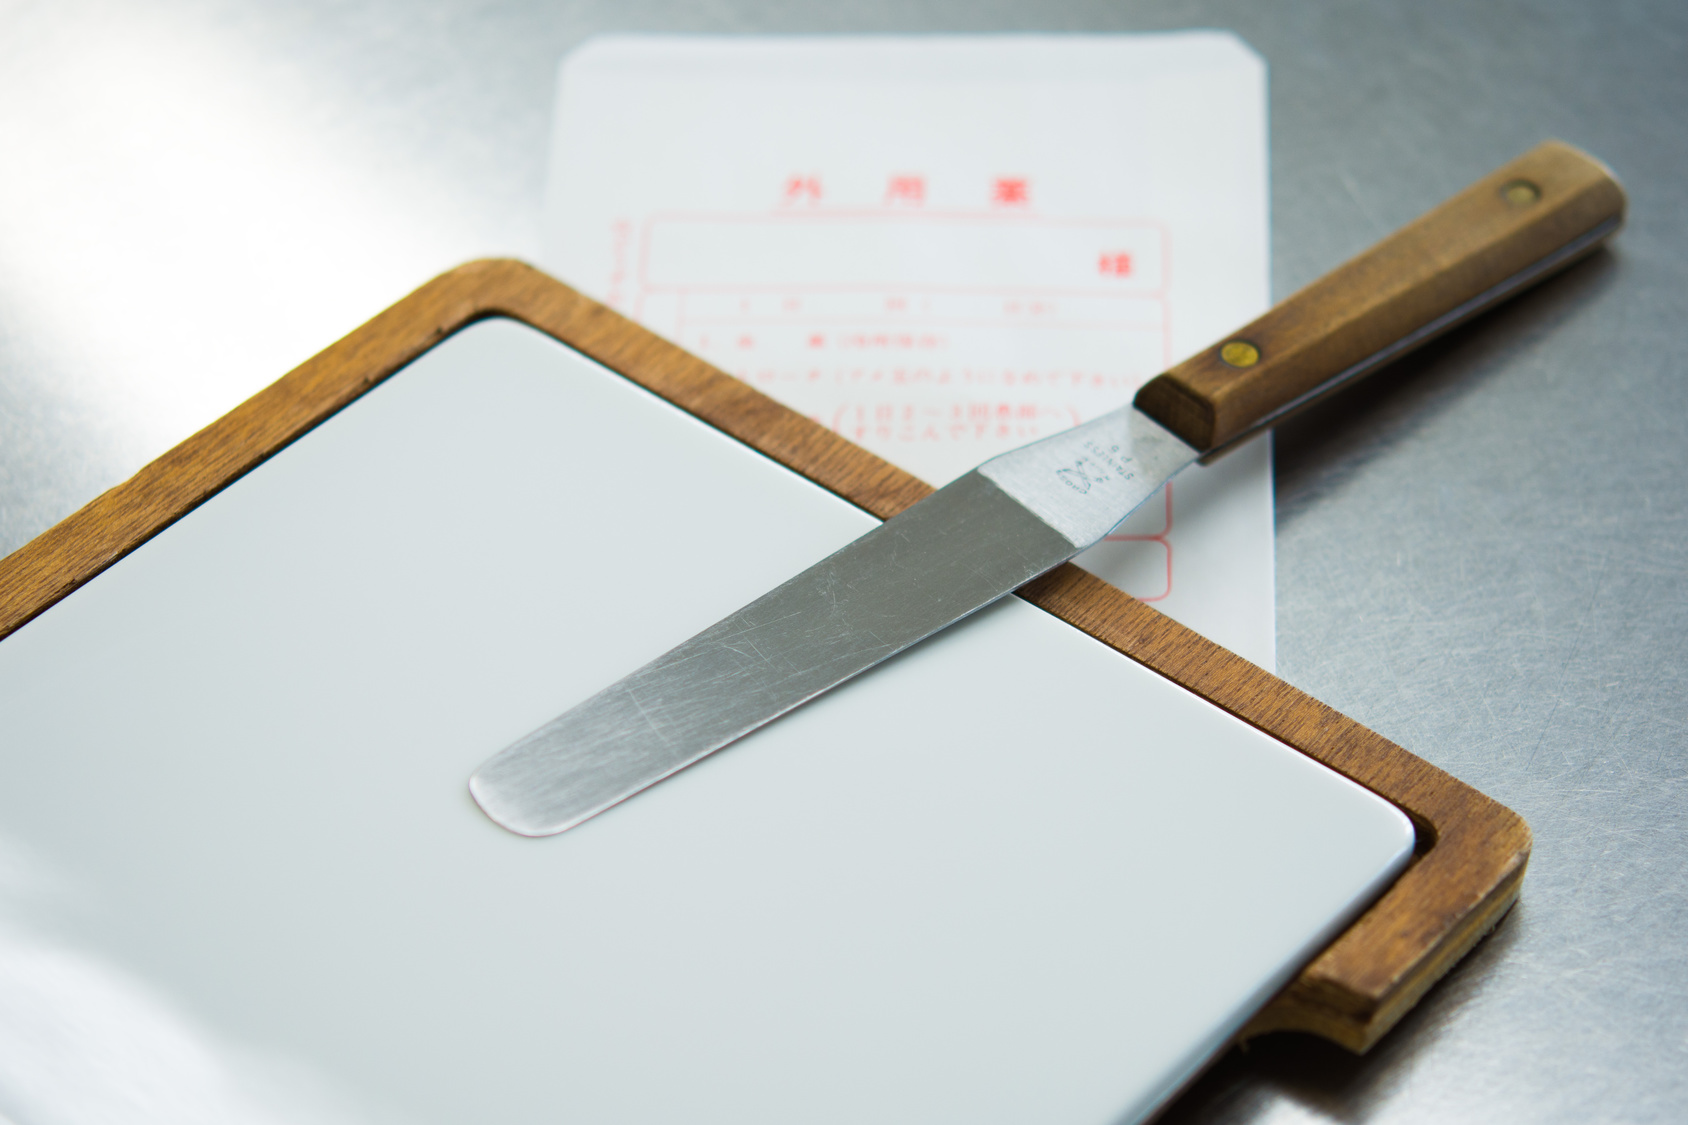 Cutting board and knife and note found in car afterwards contact flint drug crime attorney